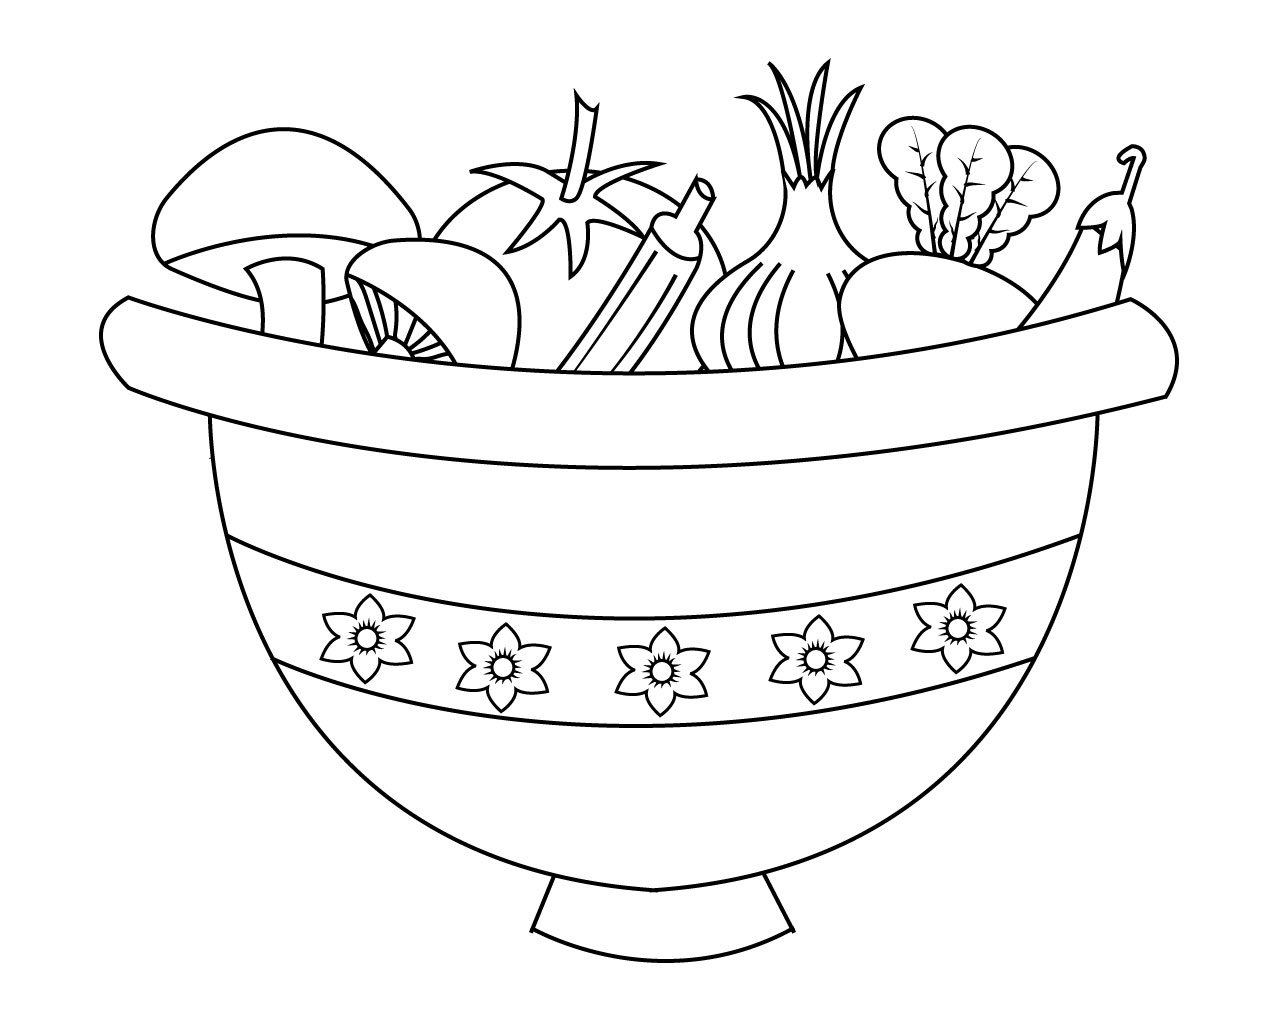 colouring pages of vegetables cartoon fruits and vegetables coloring home of pages colouring vegetables